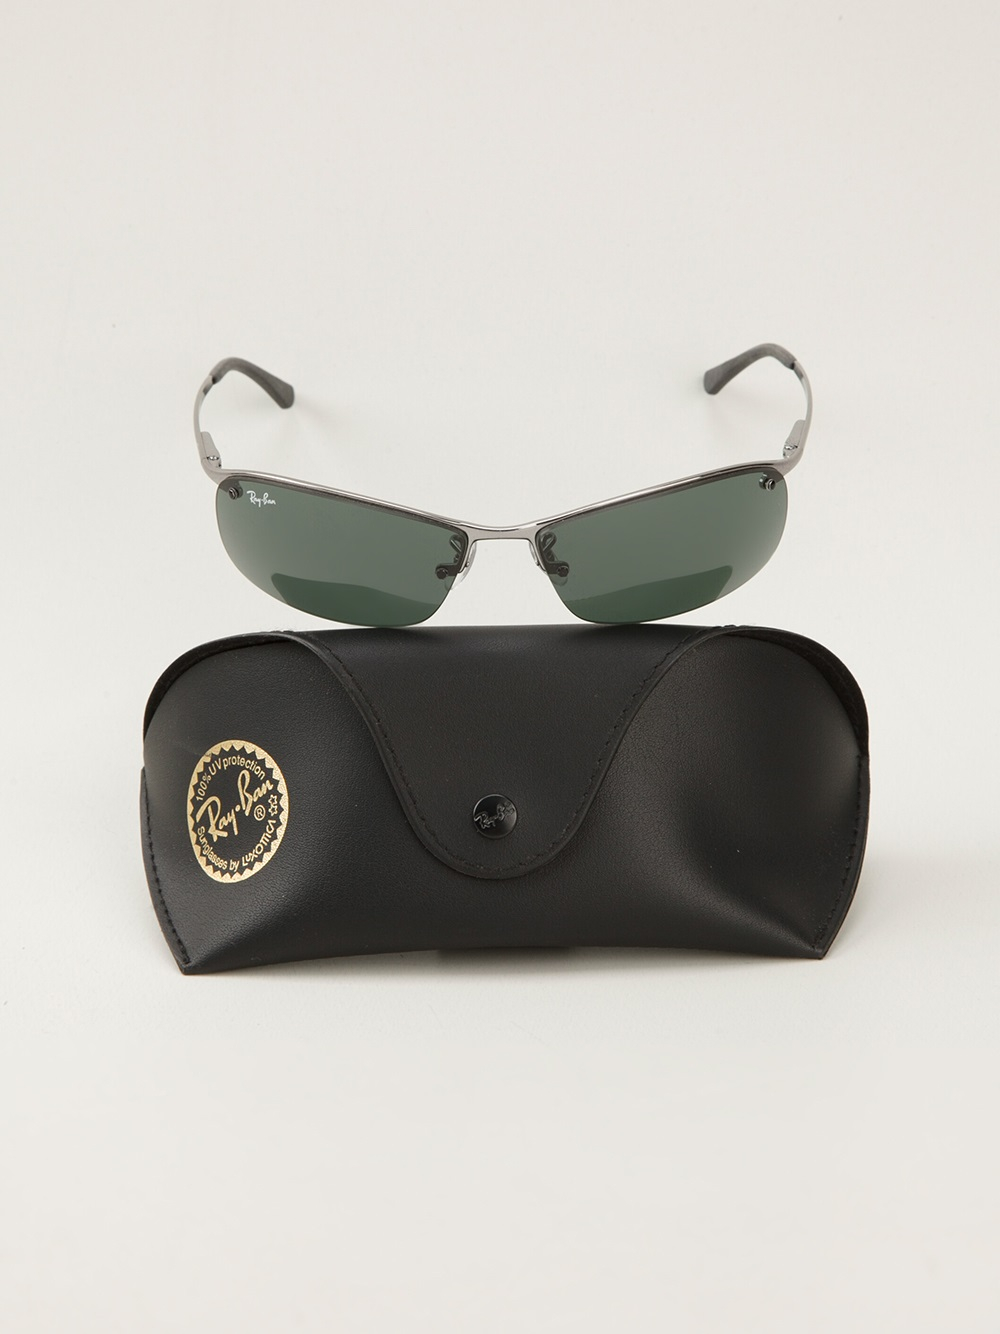 Ray Ban Oval Shape Sunglasses In Black For Men Lyst